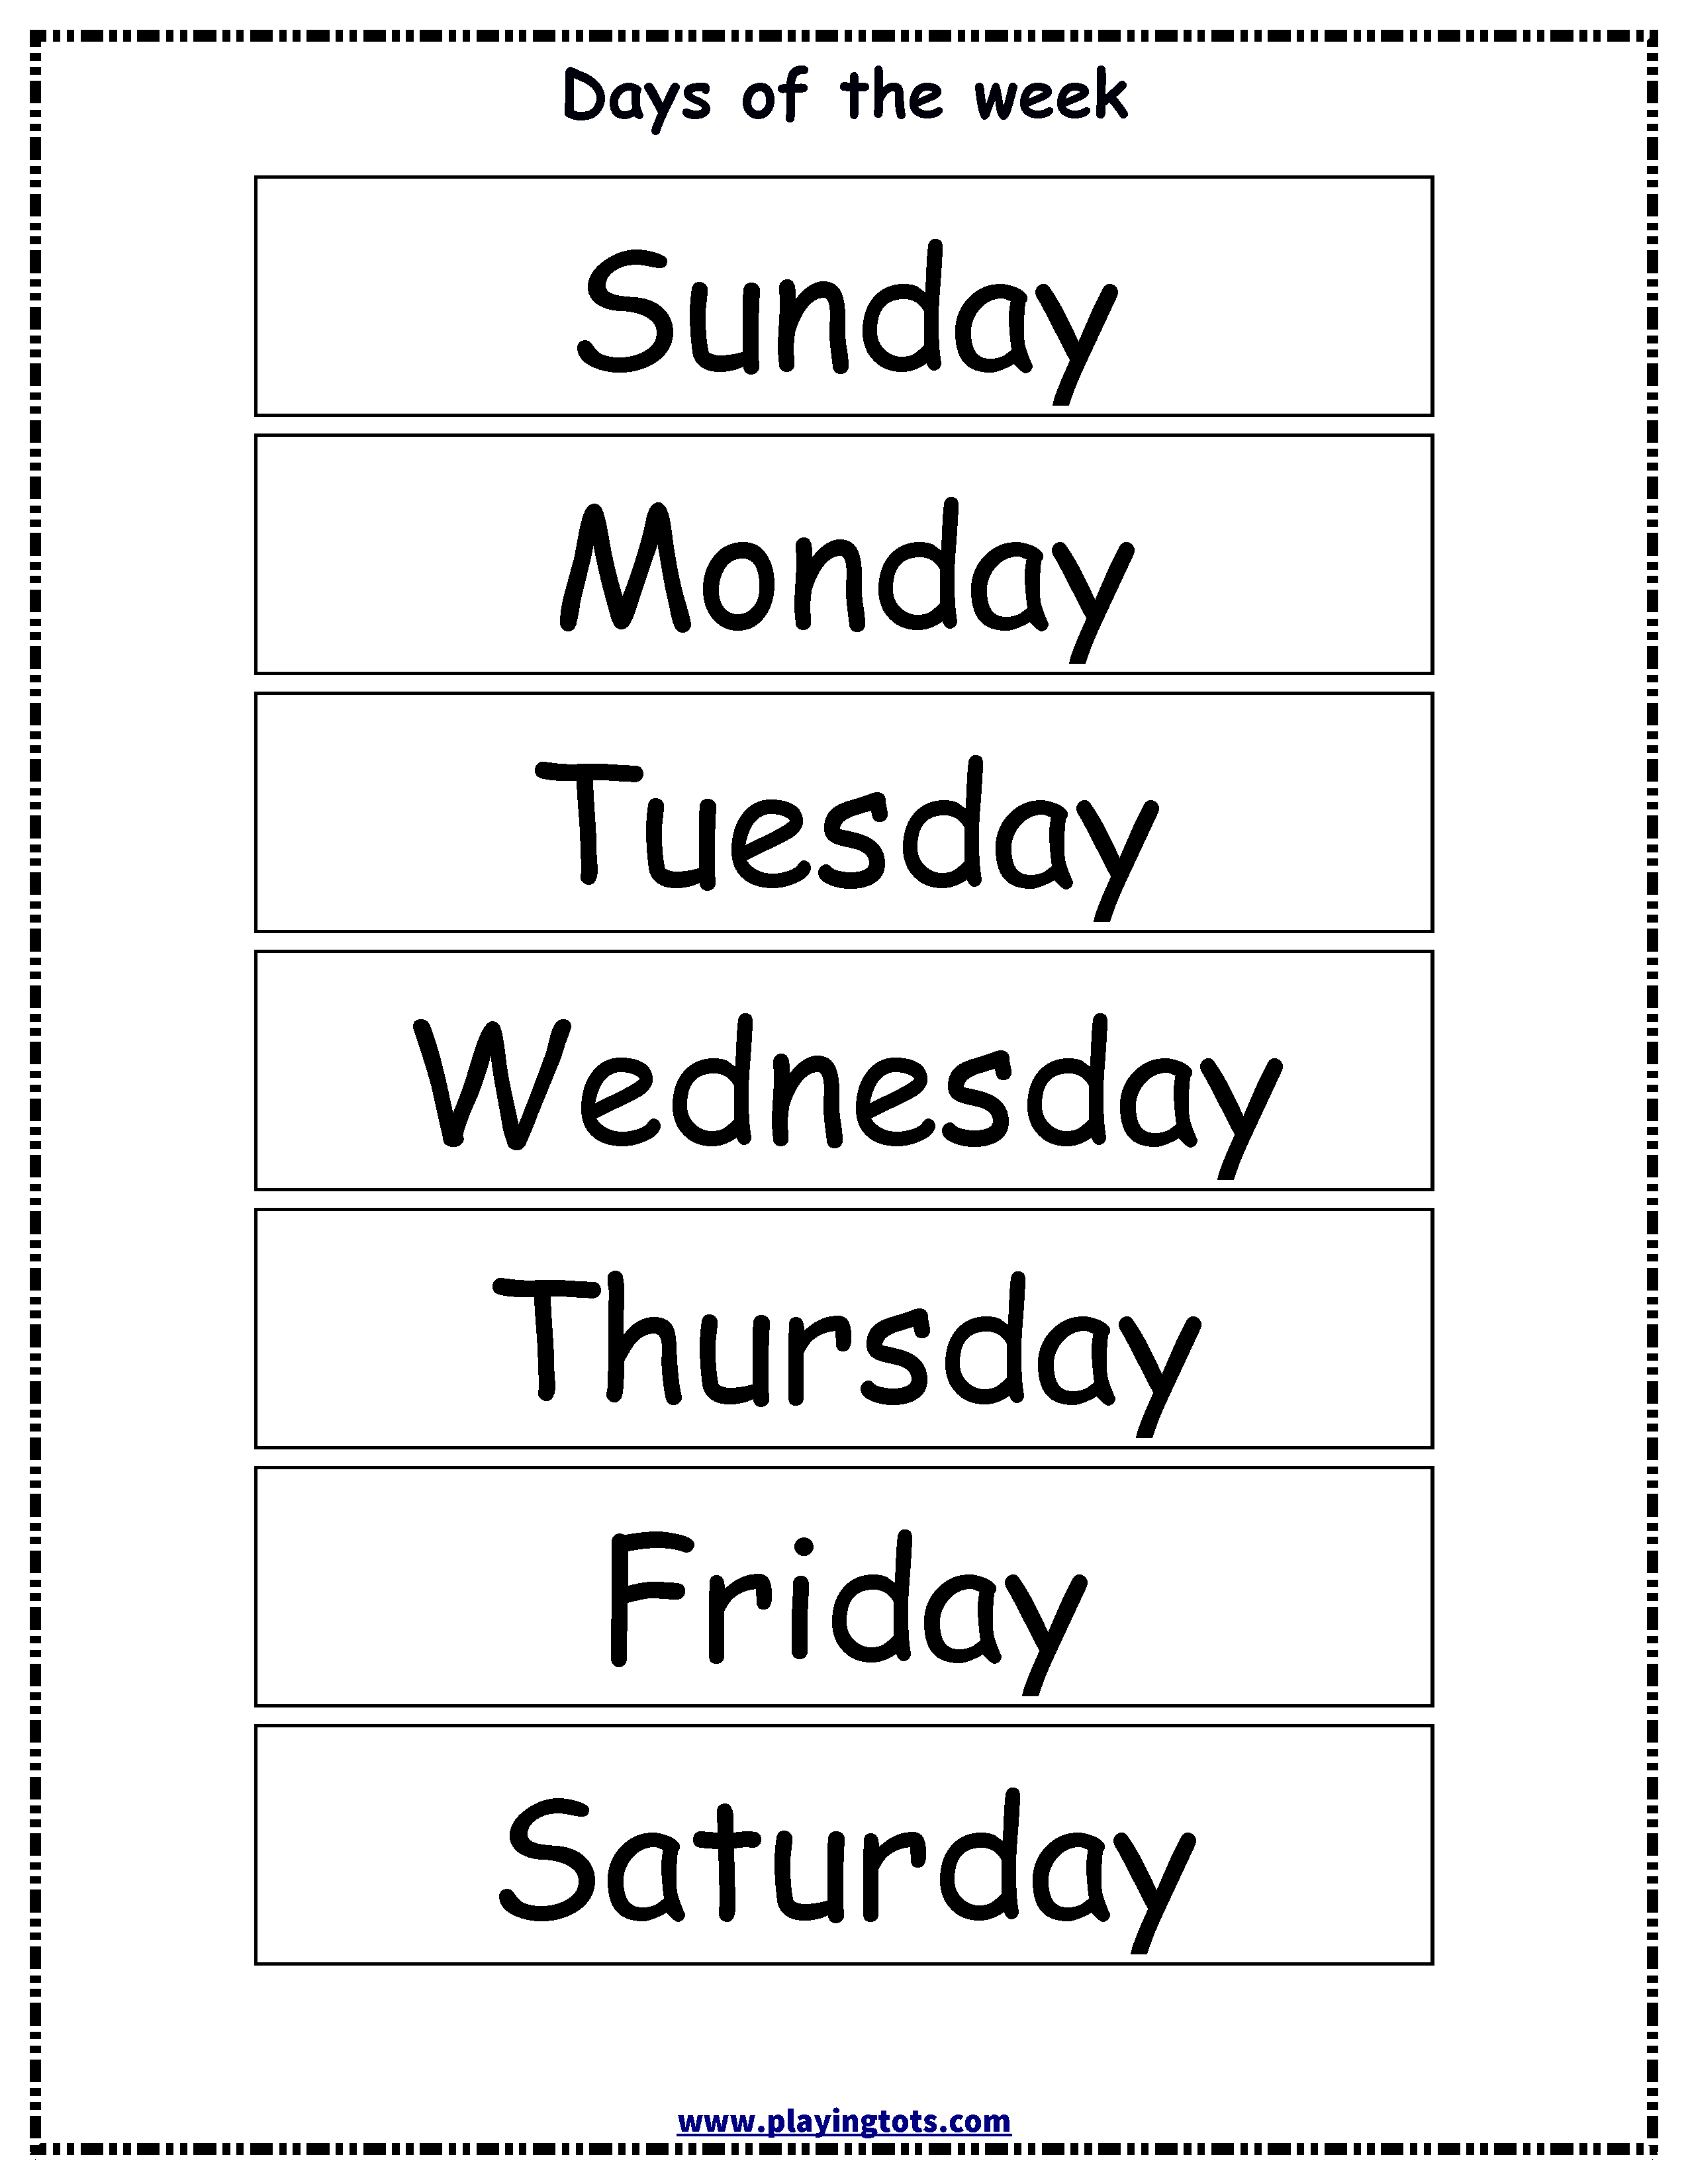 picture regarding Free Printable Days of the Week Worksheets referred to as Totally free printable times of the 7 days chart clroom Programs